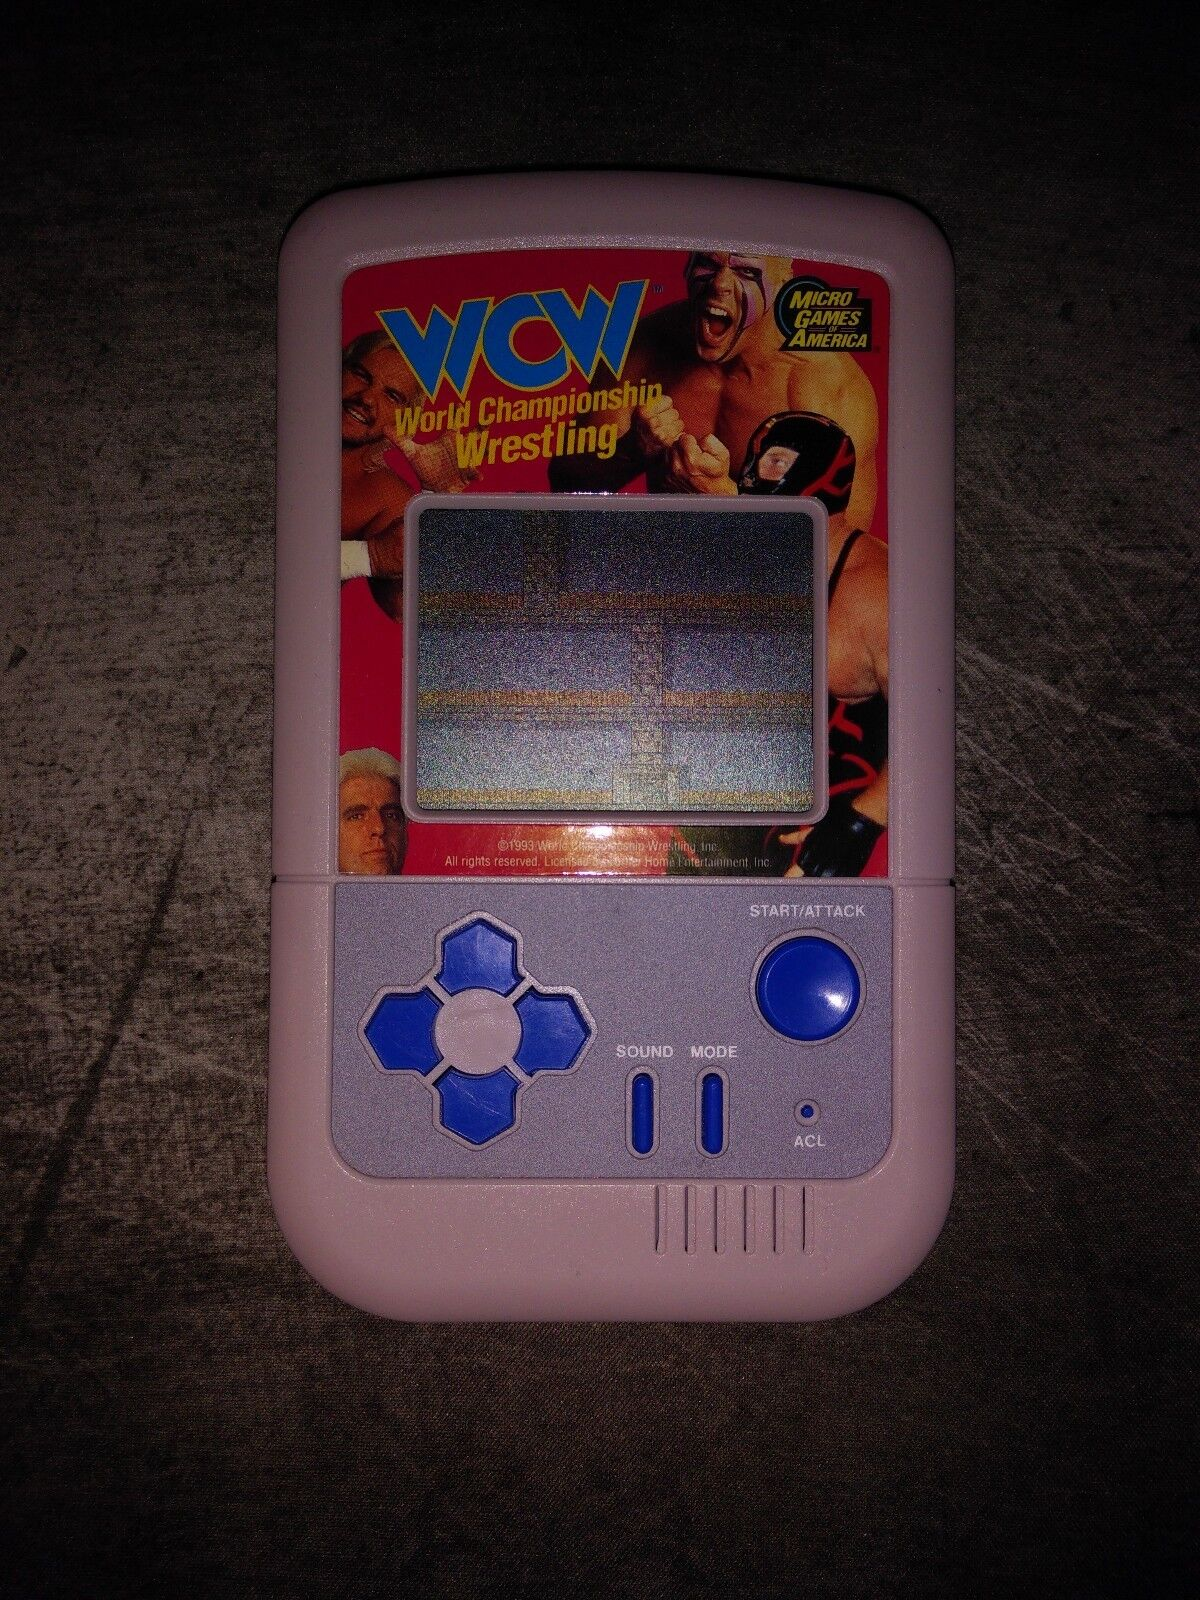 WCW Handheld Game Micro Games of America World Championship Wrestling Rare